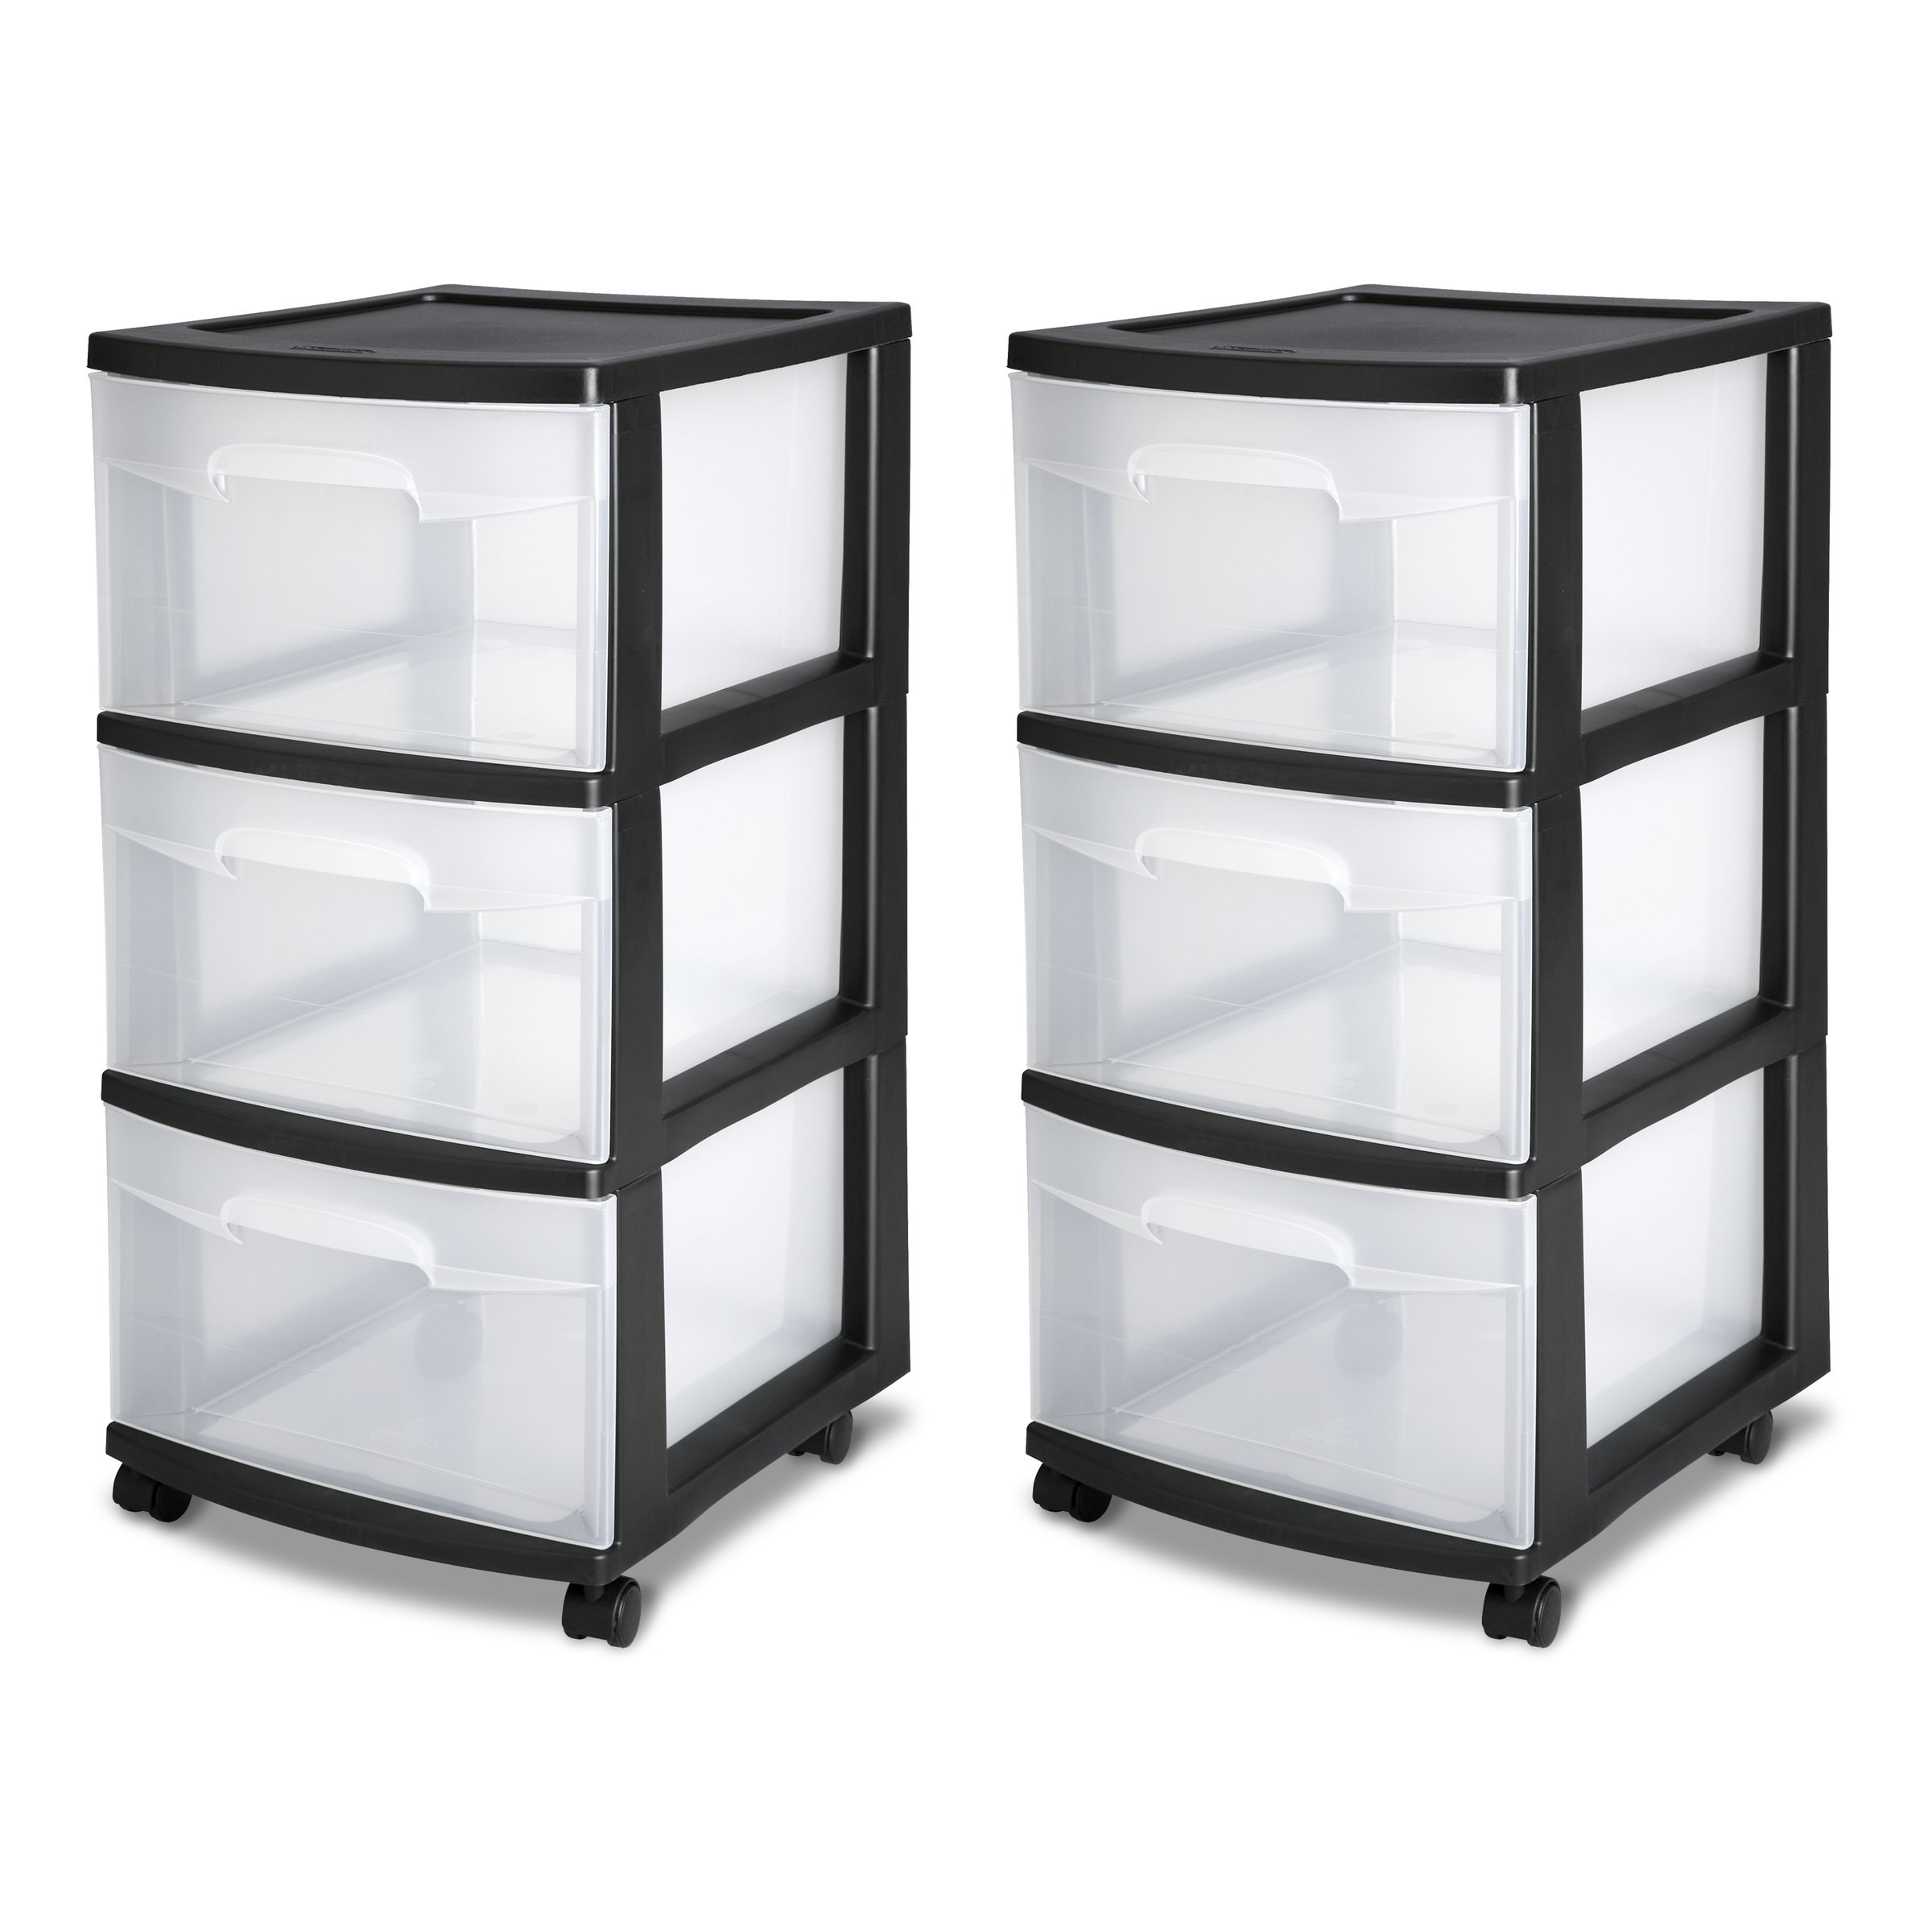 Sterilite 28309002 3 Drawer Cart, Black Frame with Clear Drawers and Black Casters, 2-Pack by STERILITE